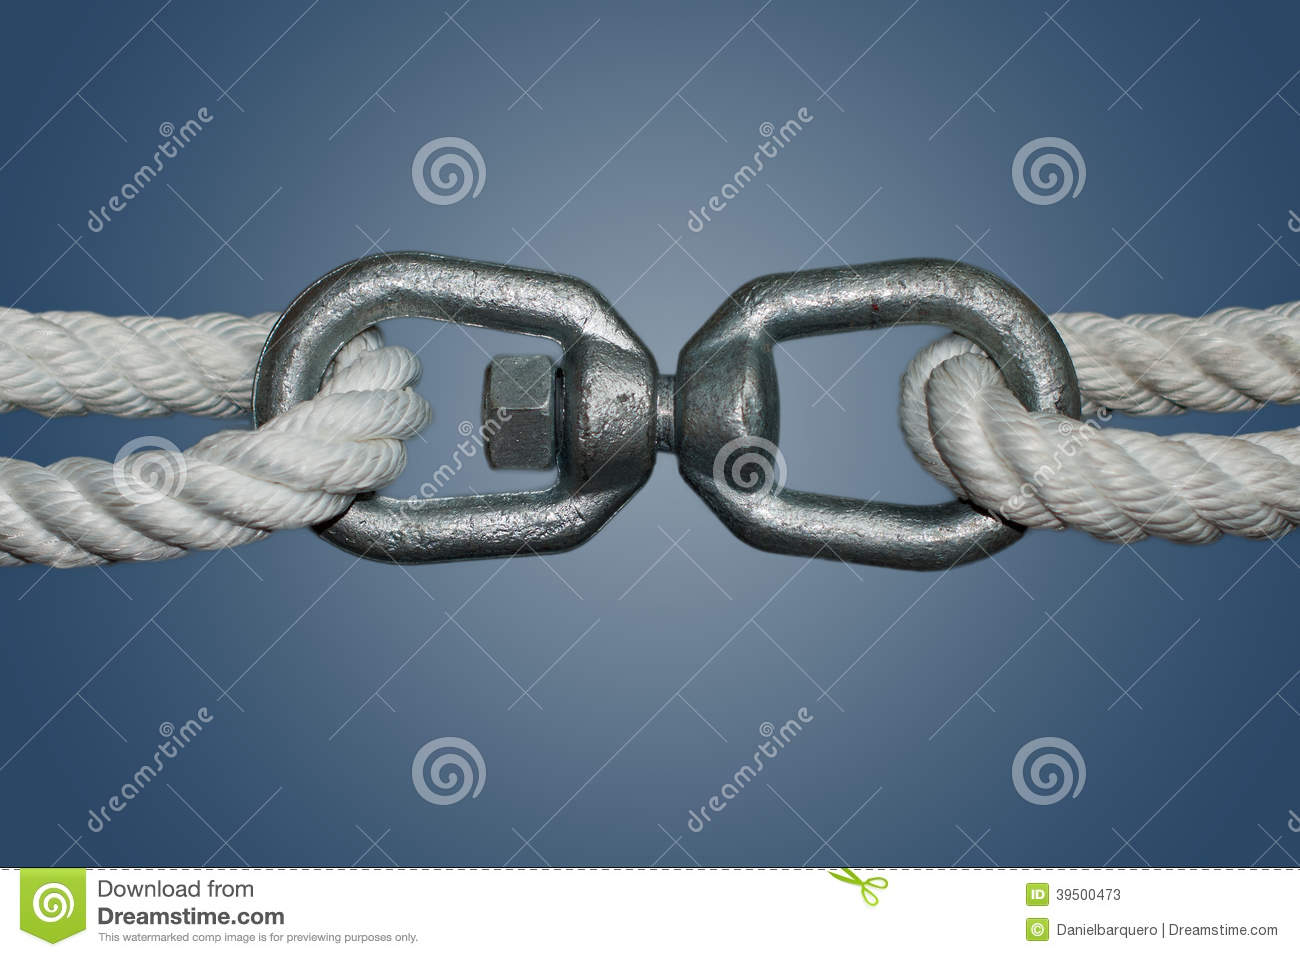 Ropes with double eye swivel